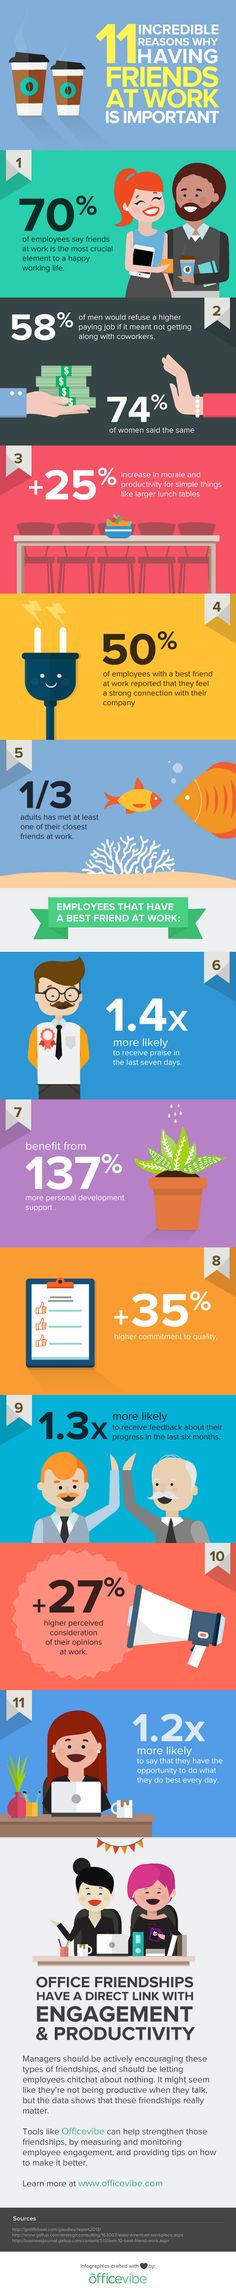 Why Having Friends At Work Is Important Infographic - http://elearninginfographics.com/why-having-friends-at-work-is-important-infographic/